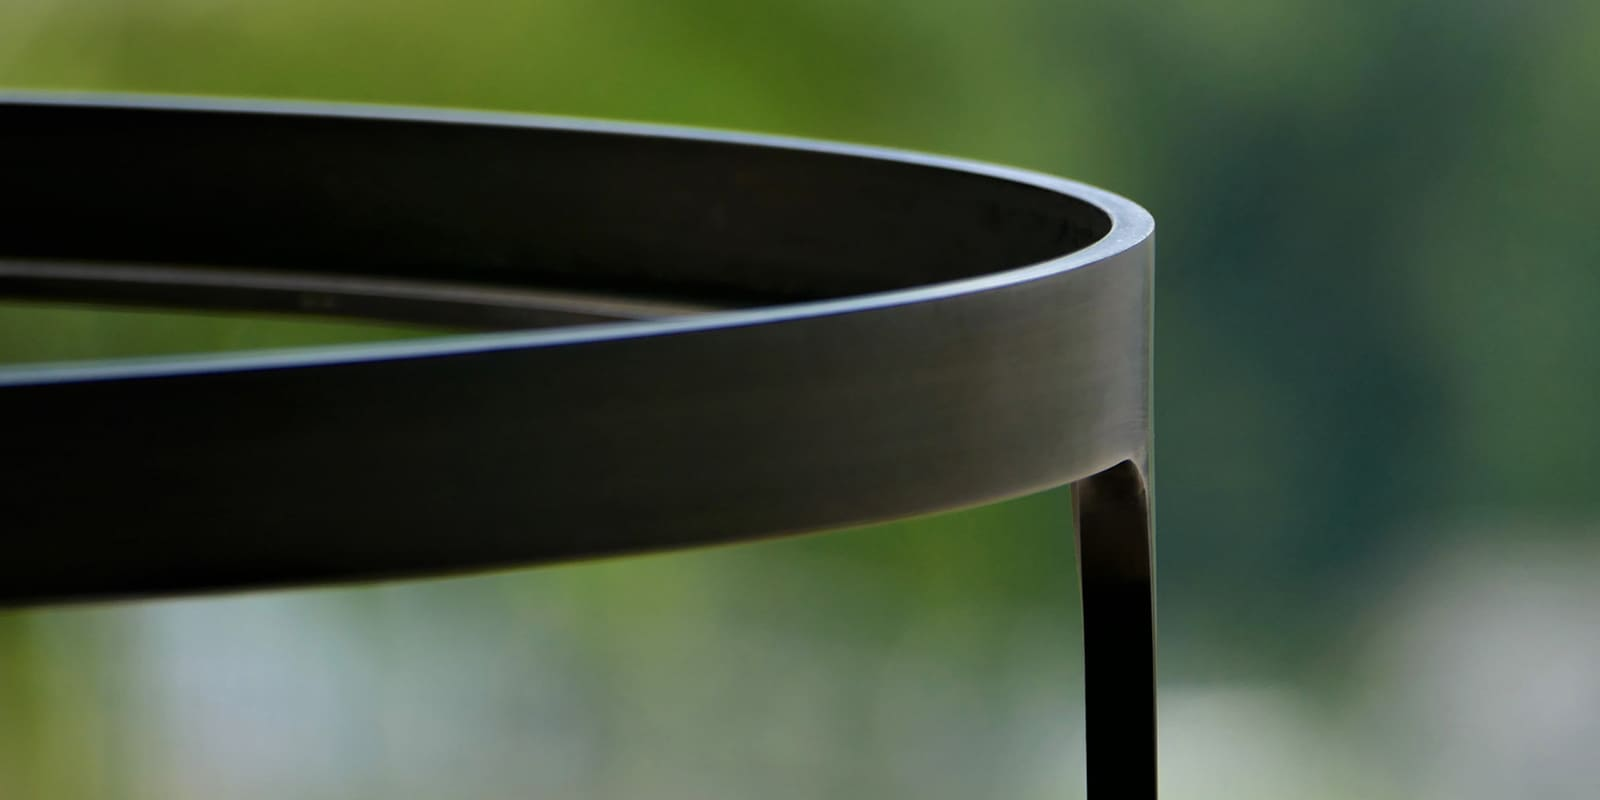 mr steel design - Kunstschmied Manfred Rauter